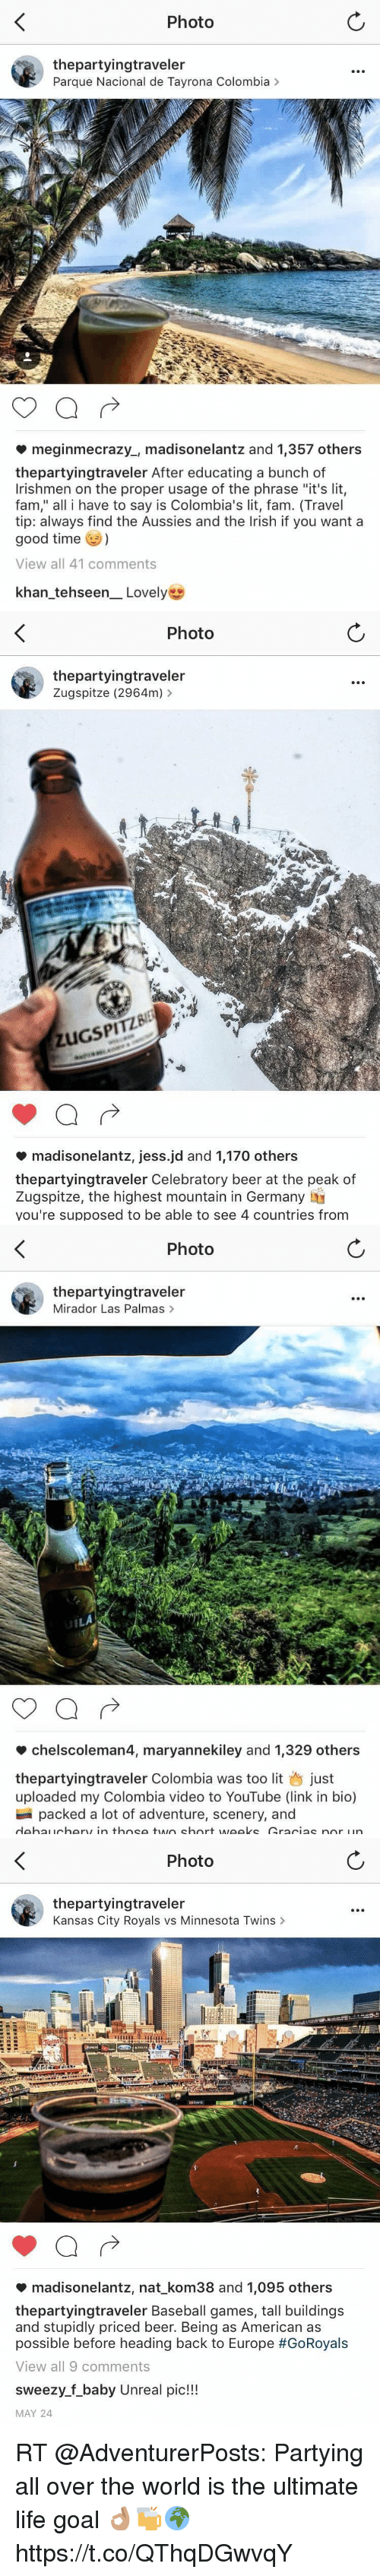 """Unrealism: Photo  thepartyingtraveler  Parque Nacional de Tayrona Colombia >  meginmecrazy., madisonelantz and 1,357 others  thepartyingtraveler After educating a bunch of  Irishmen on the proper usage of the phrase """"it's lit,  fam,"""" all i have to say is Colombia's lit, fam. (Travel  tip: always find the Aussies and the Irish if you want a  good time  View all 41 comments  khan-tehseen-Lovely   Photo  thepartyingtraveler  Zugspitze (2964m)>  uGSPITZ  madisonelantz, jessid and 1,170 others  thepartyingtraveler Celebratory beer at the peak of  Zugspitze, the highest mountain in Germany  you're supposed to be able to see 4 countries from   Photo  thepartyingtraveler  Mirador Las Palmas>  chelscoleman4, maryannekiley and 1,329 others  thepartyingtraveler Colombia was too lit just  uploaded my Colombia video to YouTube (link in bio)  packed a lot of adventure, scenery, and   Photo  thepartyingtraveler  Kansas City Royals vs Minnesota Twins >  madisonelantz, nat-kom38 and 1,095 others  thepartyingtraveler Baseball games, tall buildings  and stupidly priced beer. Being as American as  possible before heading back to Europe #GoRoyals  View all 9 comments  sweezy.f_baby Unreal pic!!!  MAY 24 RT @AdventurerPosts: Partying all over the world is the ultimate life goal 👌🏽🍻🌍 https://t.co/QThqDGwvqY"""